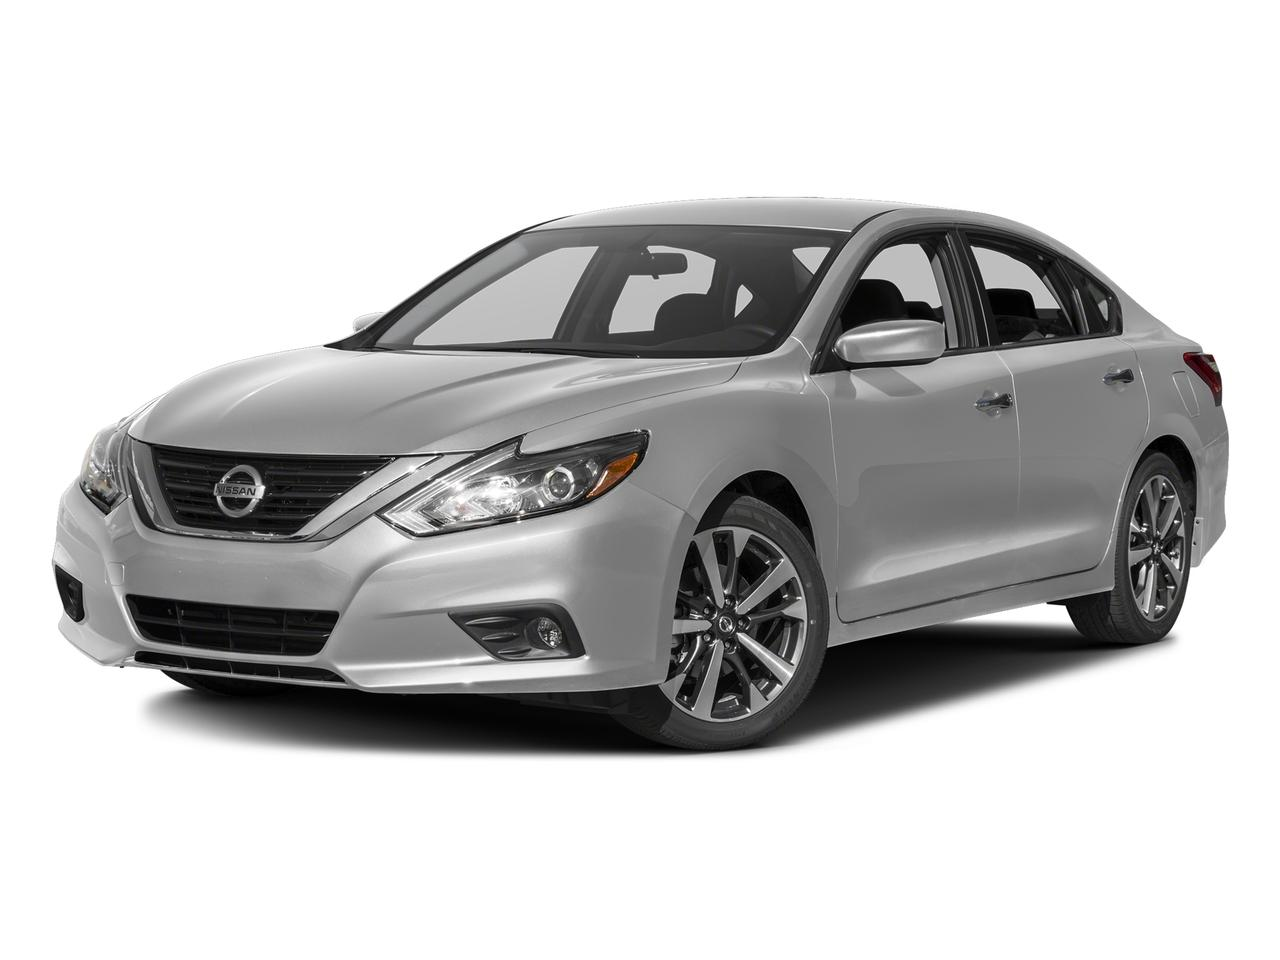 2016 Nissan Altima Vehicle Photo in West Harrison, IN 47060